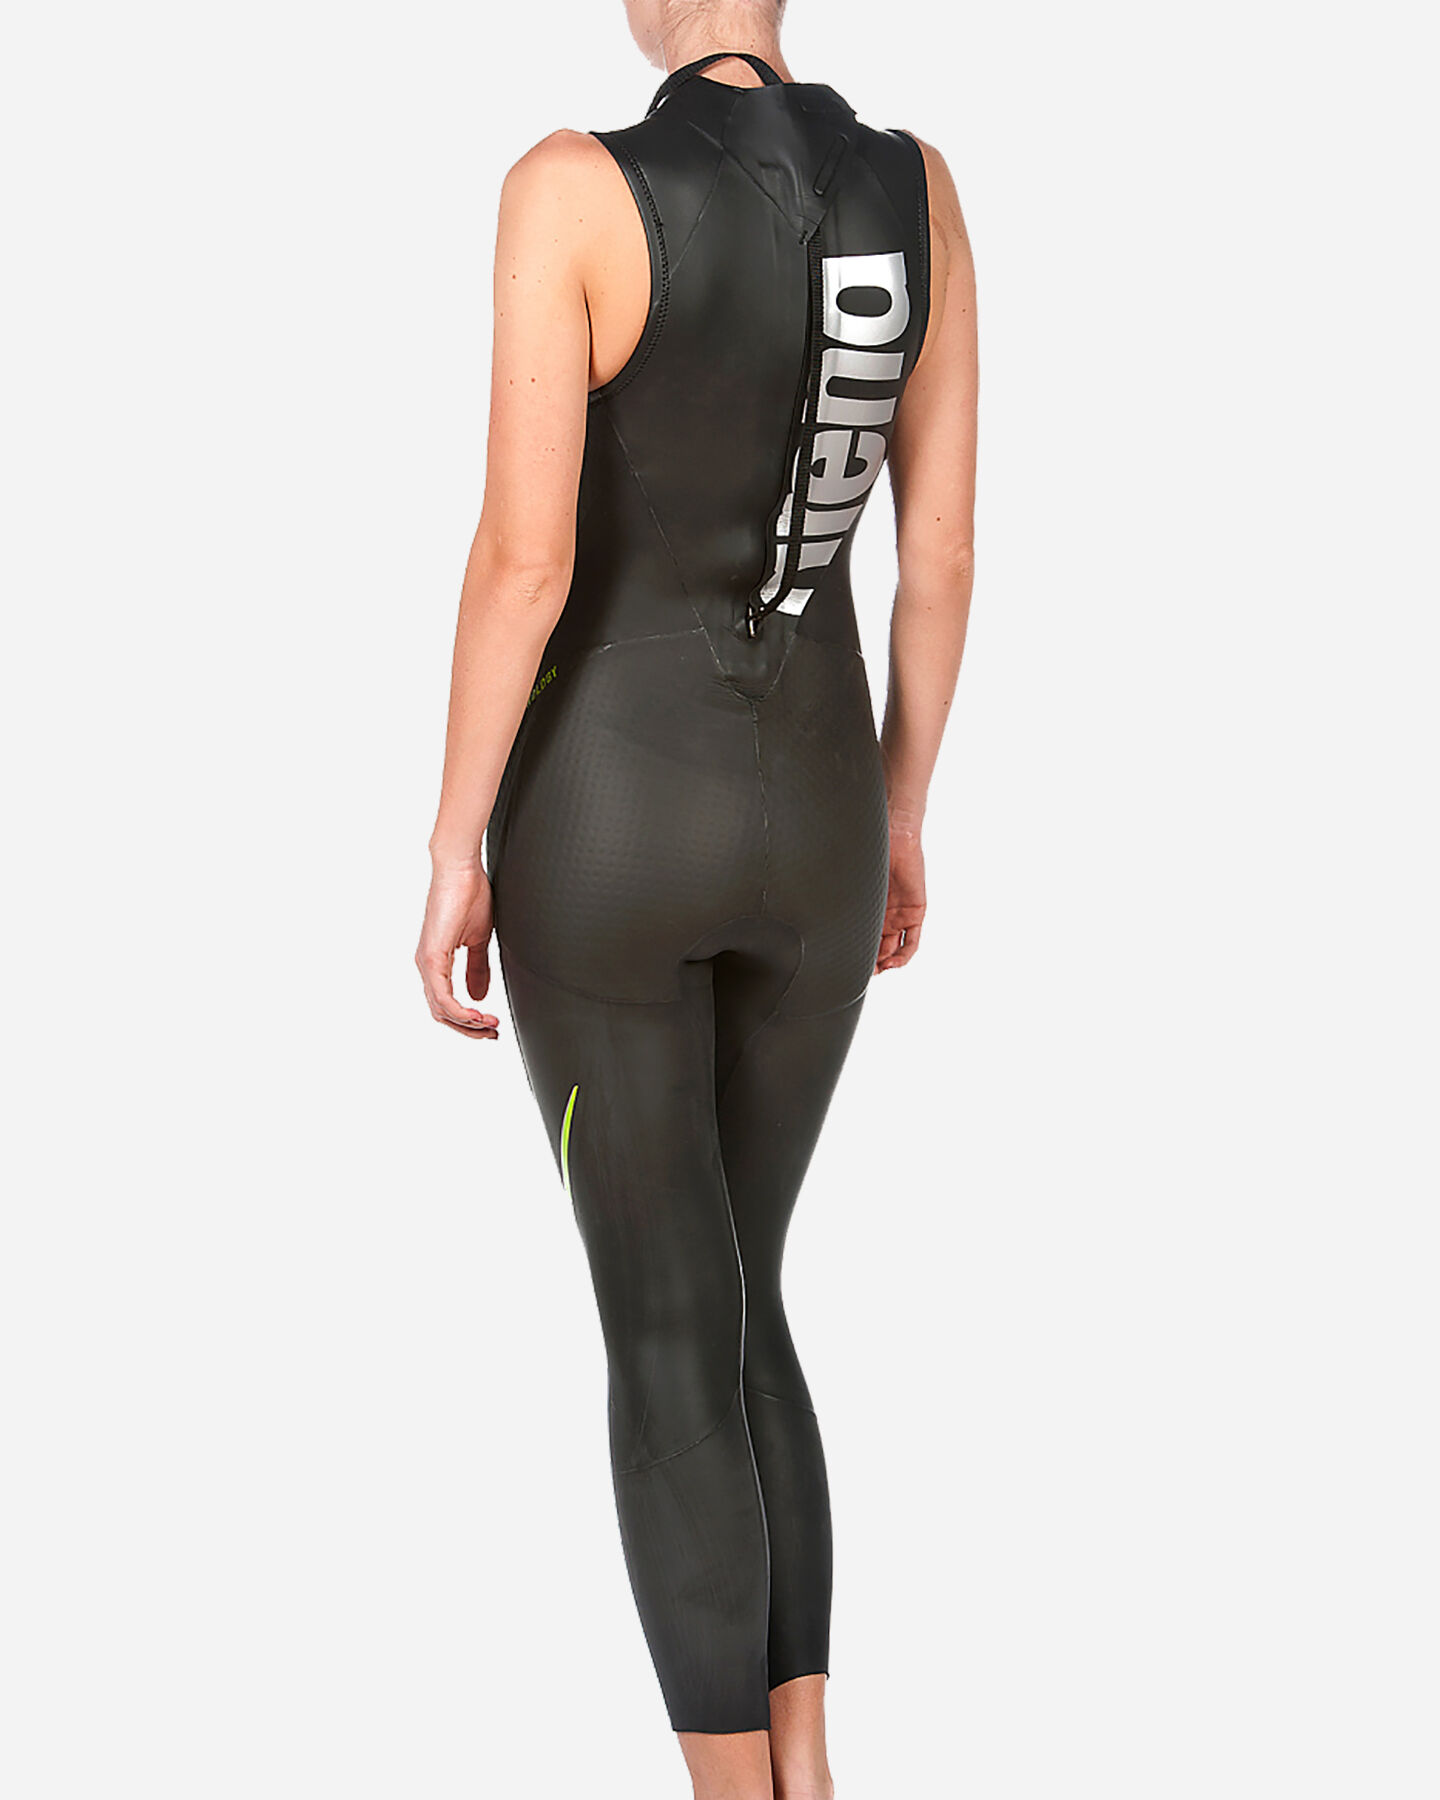 Costume piscina ARENA TRIWETSUIT CARBON W S5042756 scatto 4